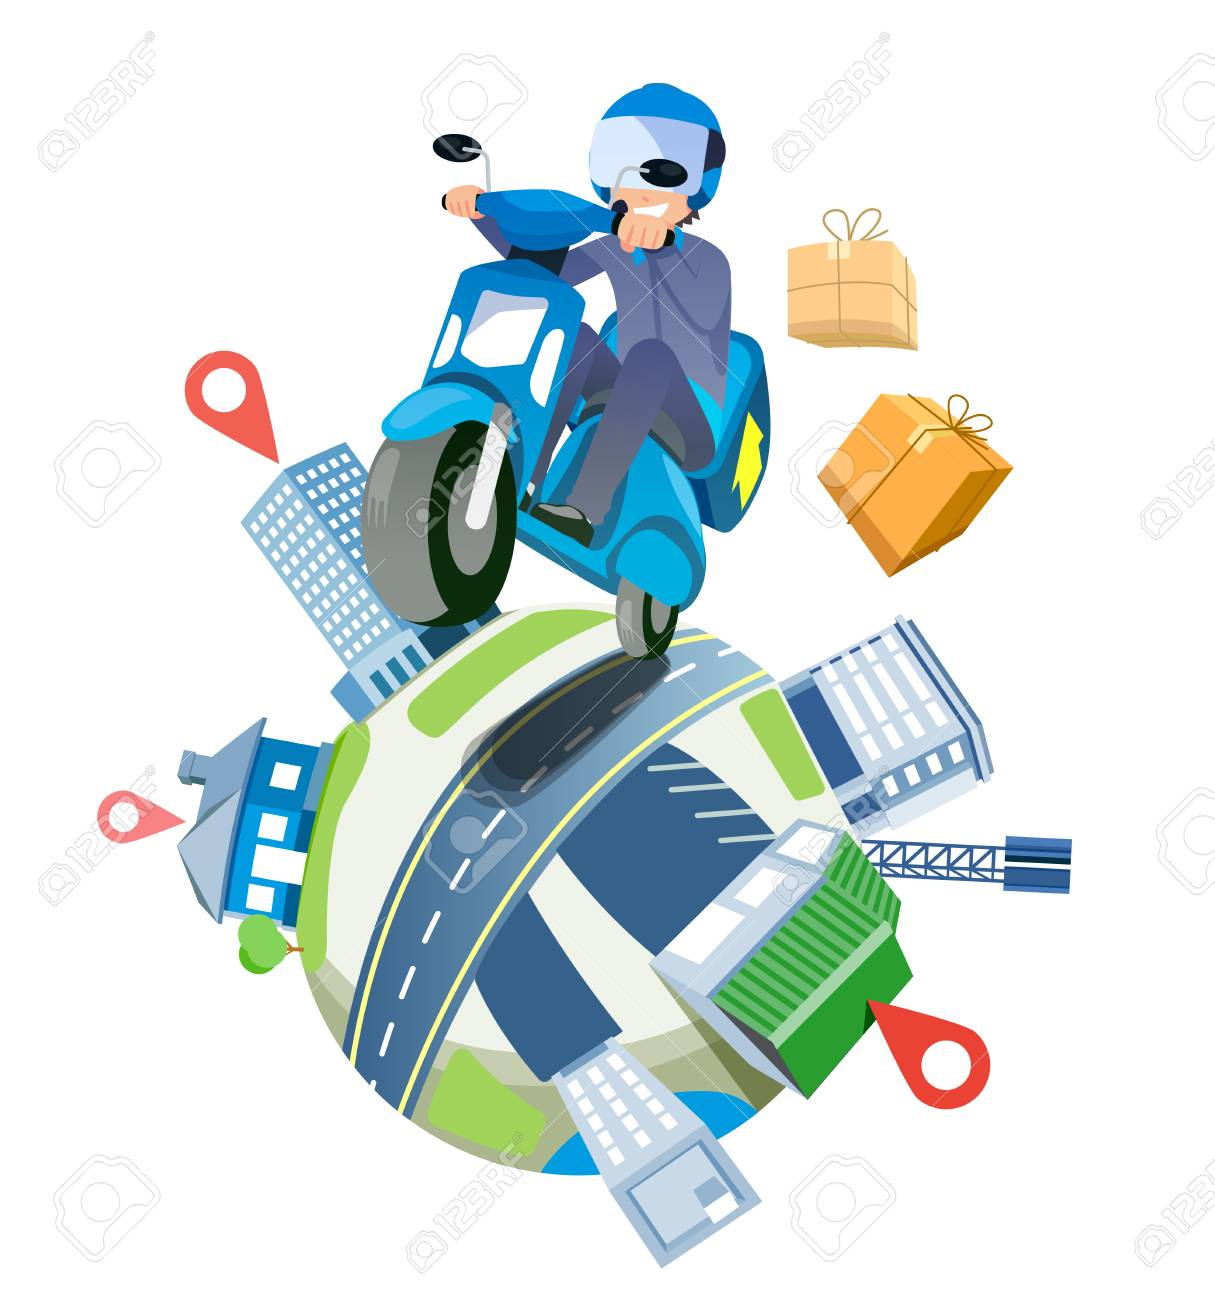 Delivery a parcel service by speedy motorcycles nationwide. shipping around the world concept. - 105391372